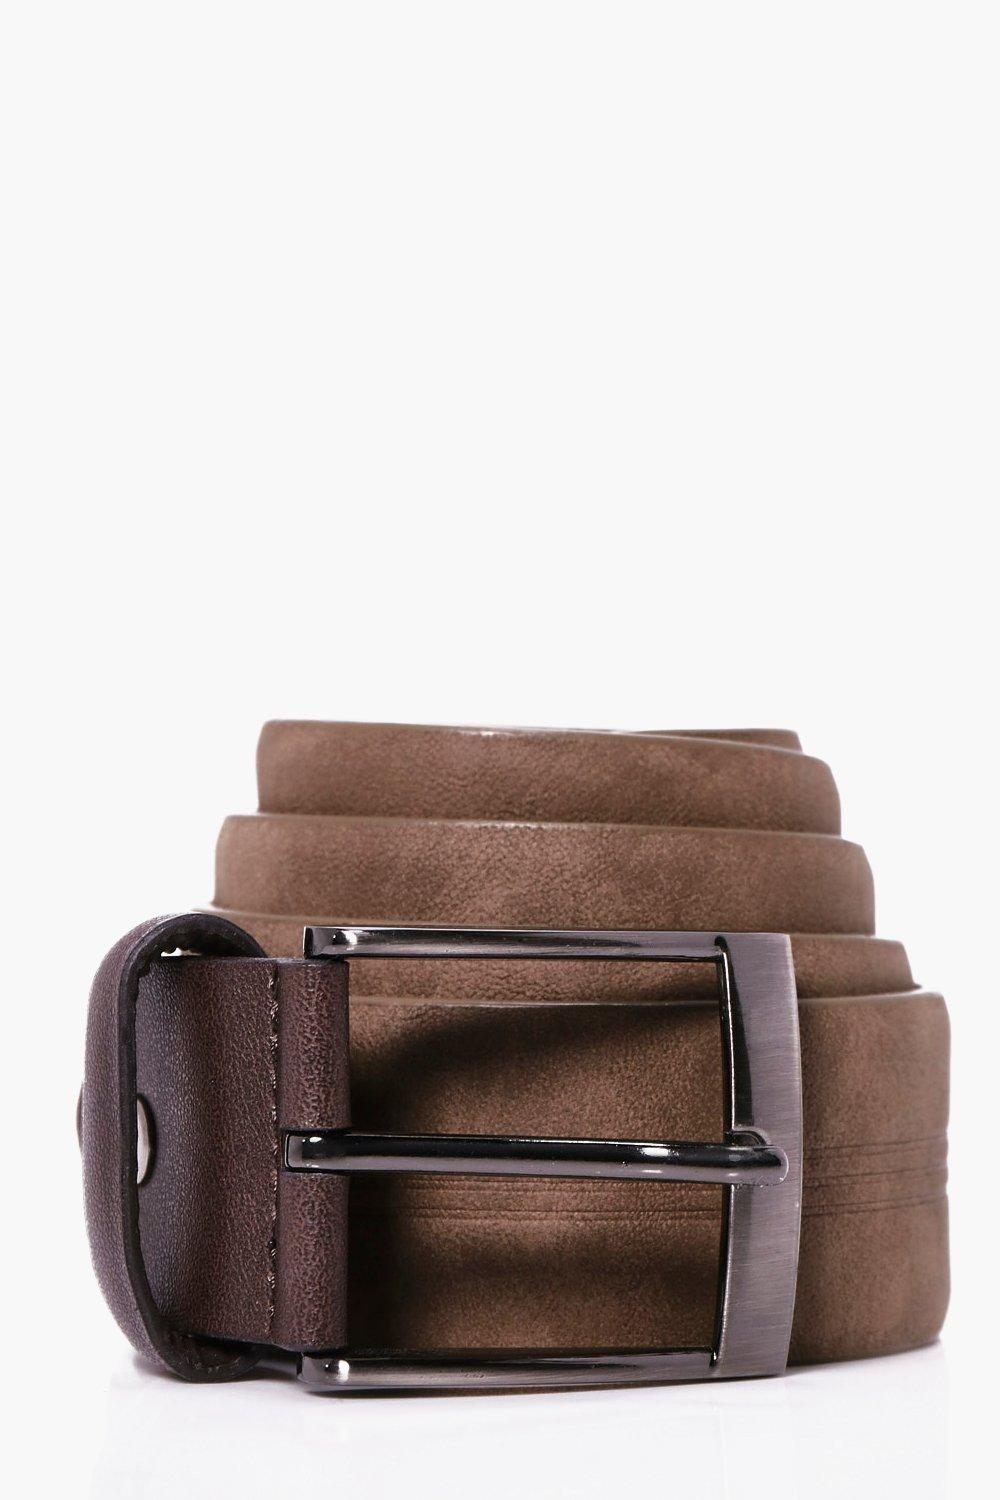 Belt With Metal Buckle - brown - PU Belt With Meta